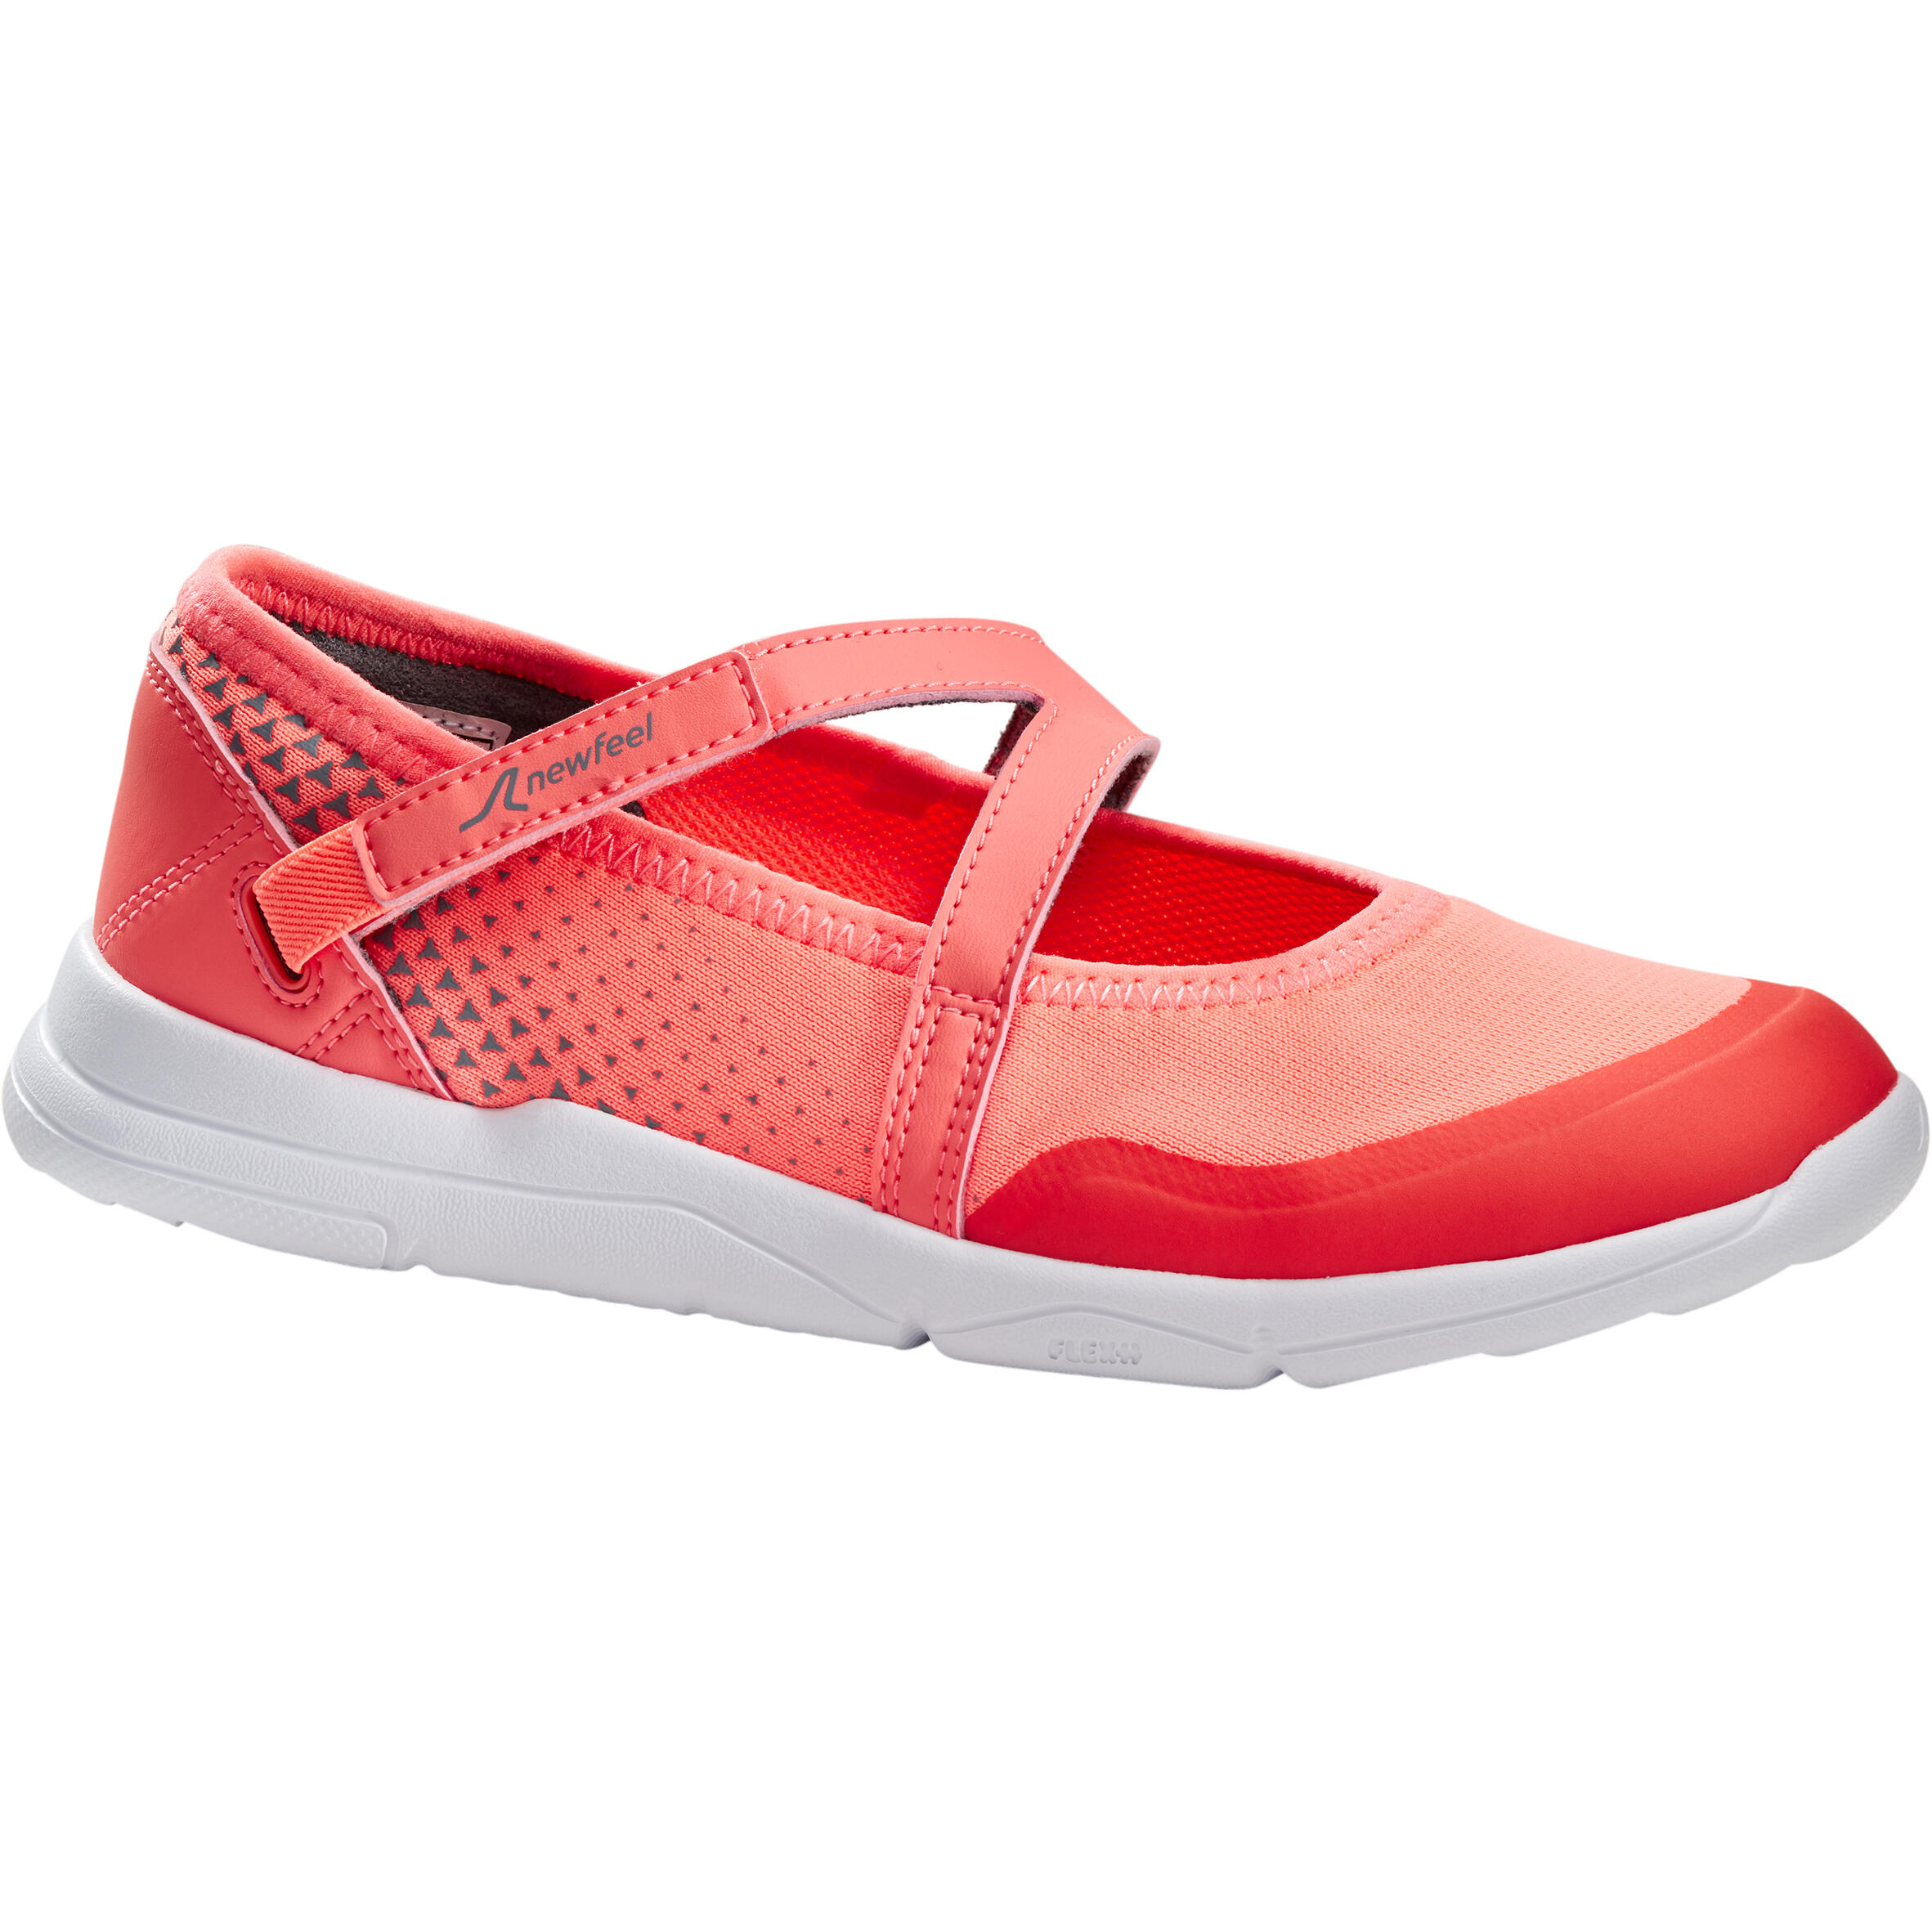 Chaussures marche fille pw 160 breasy corail newfeel